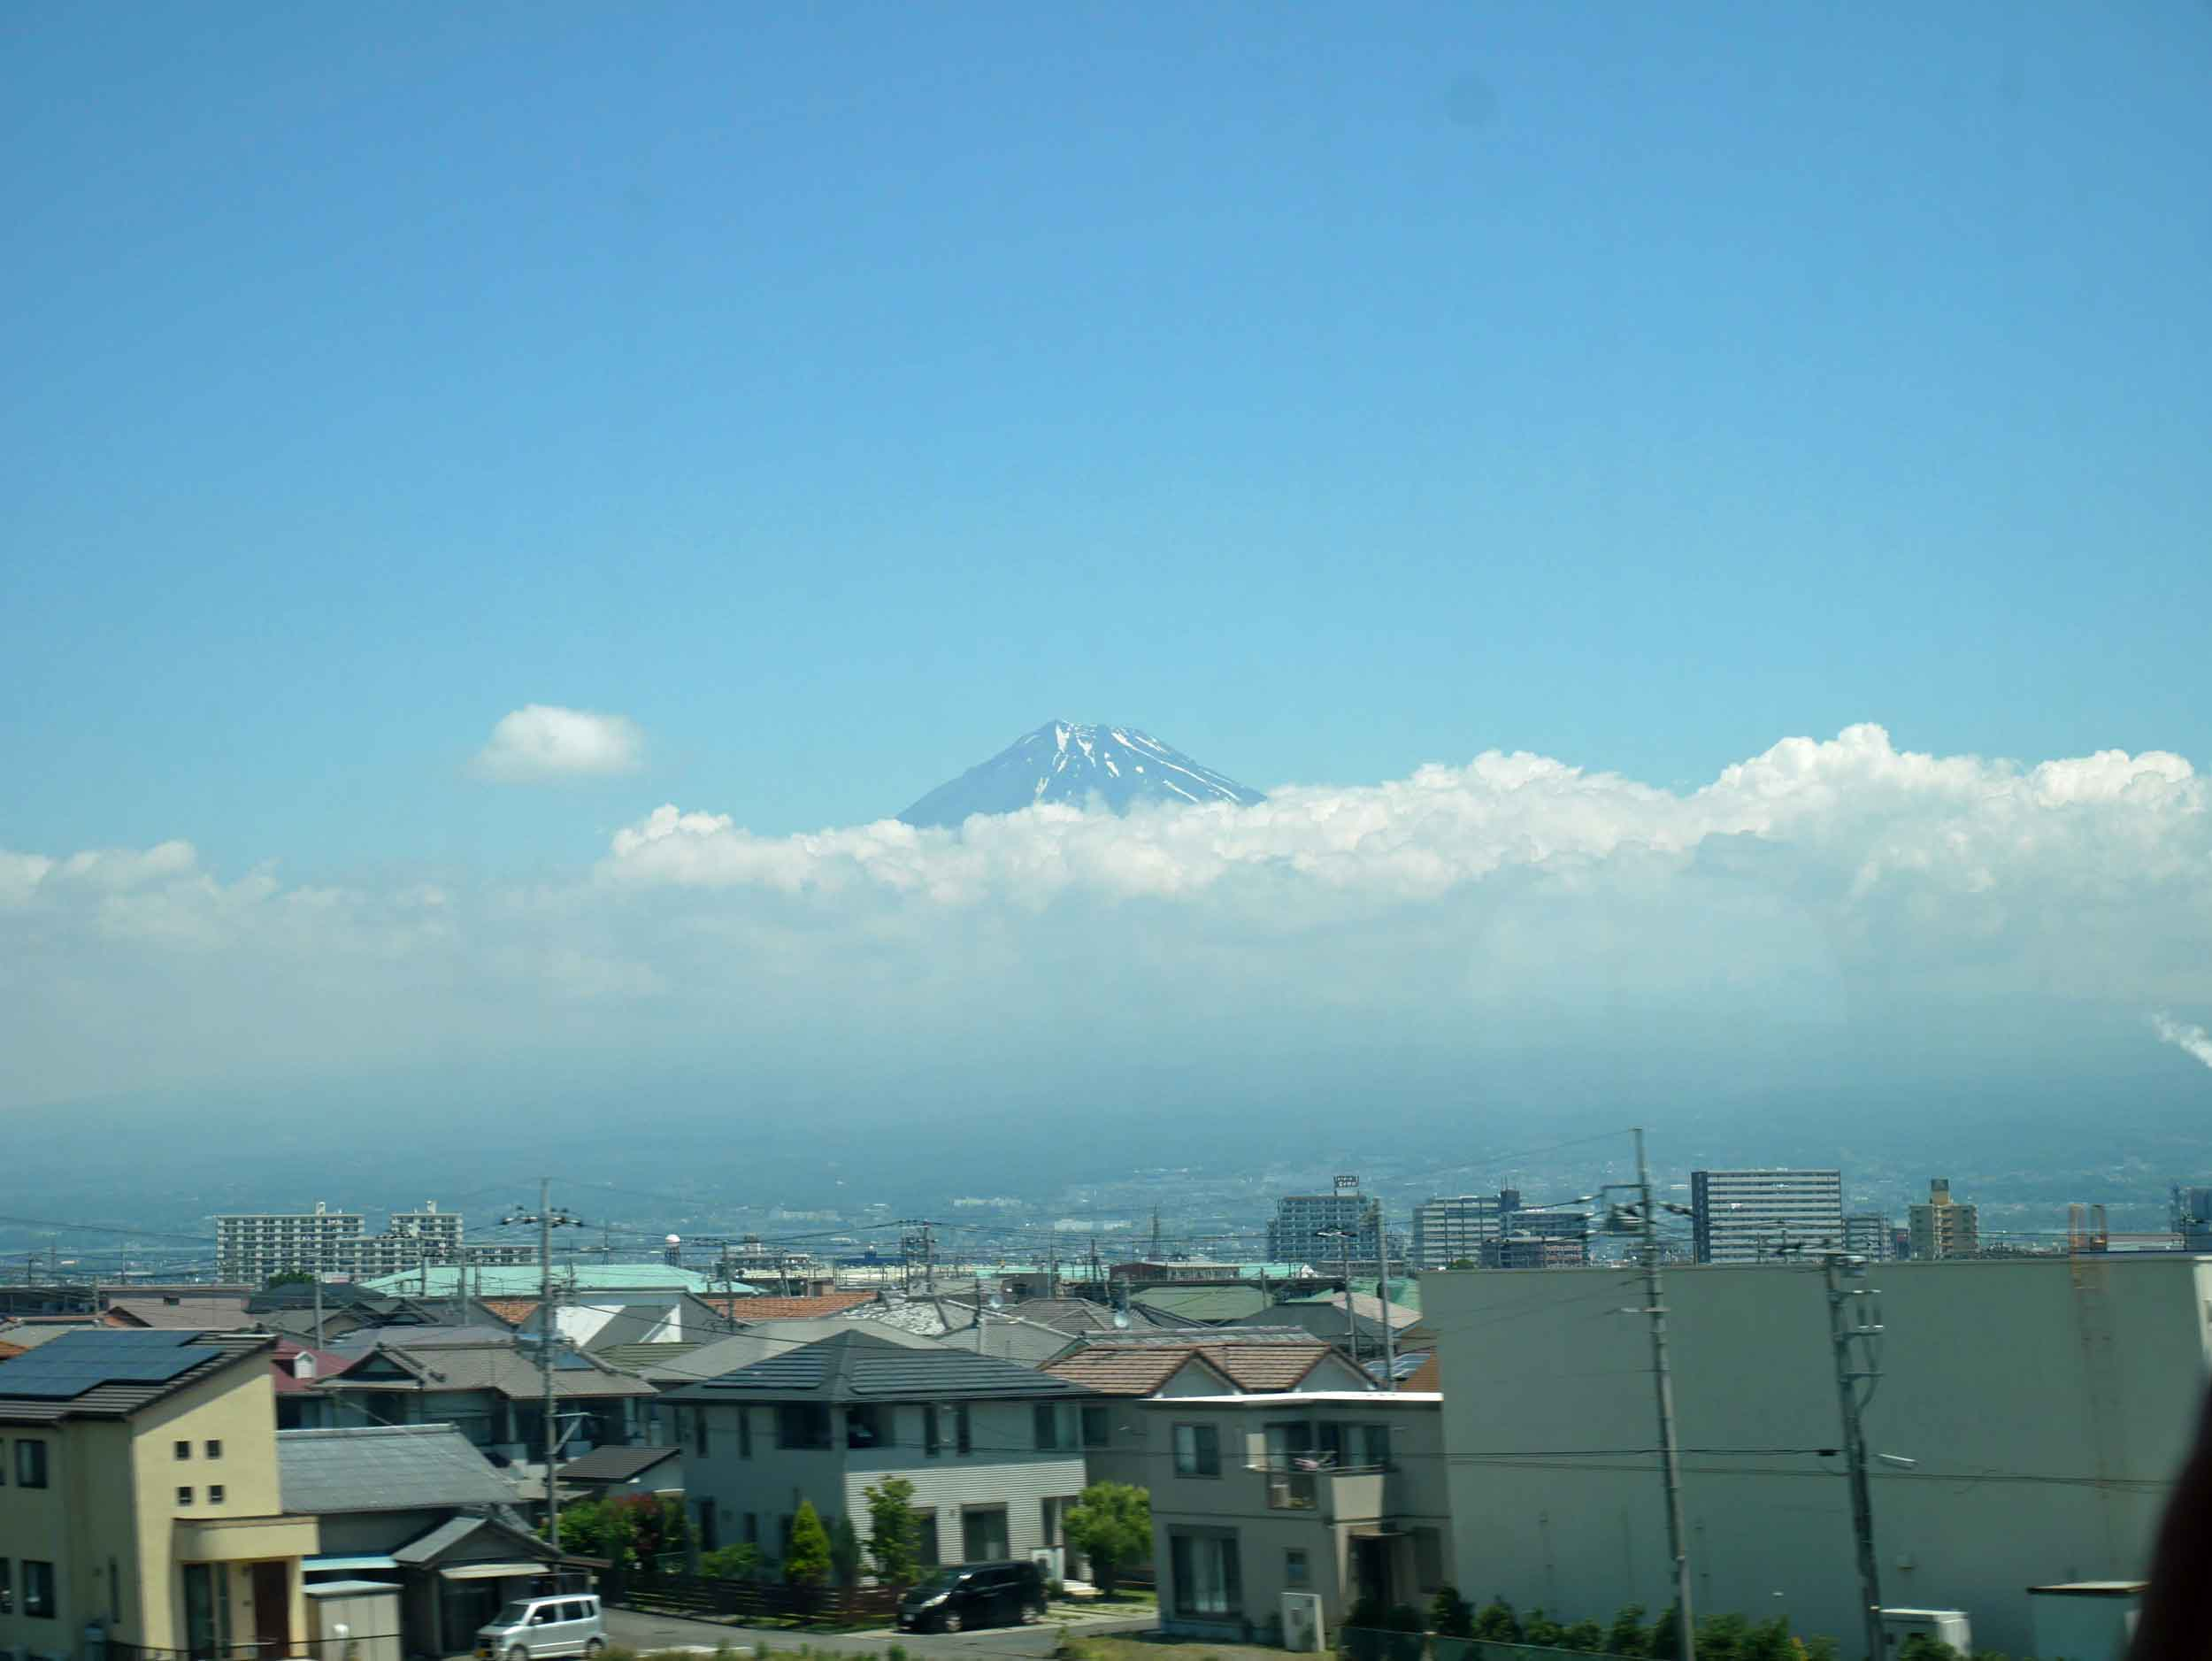 Rising above the clouds, we were in awe of the magnitude of Mt. Fuji speeding by at 250 KMpH.